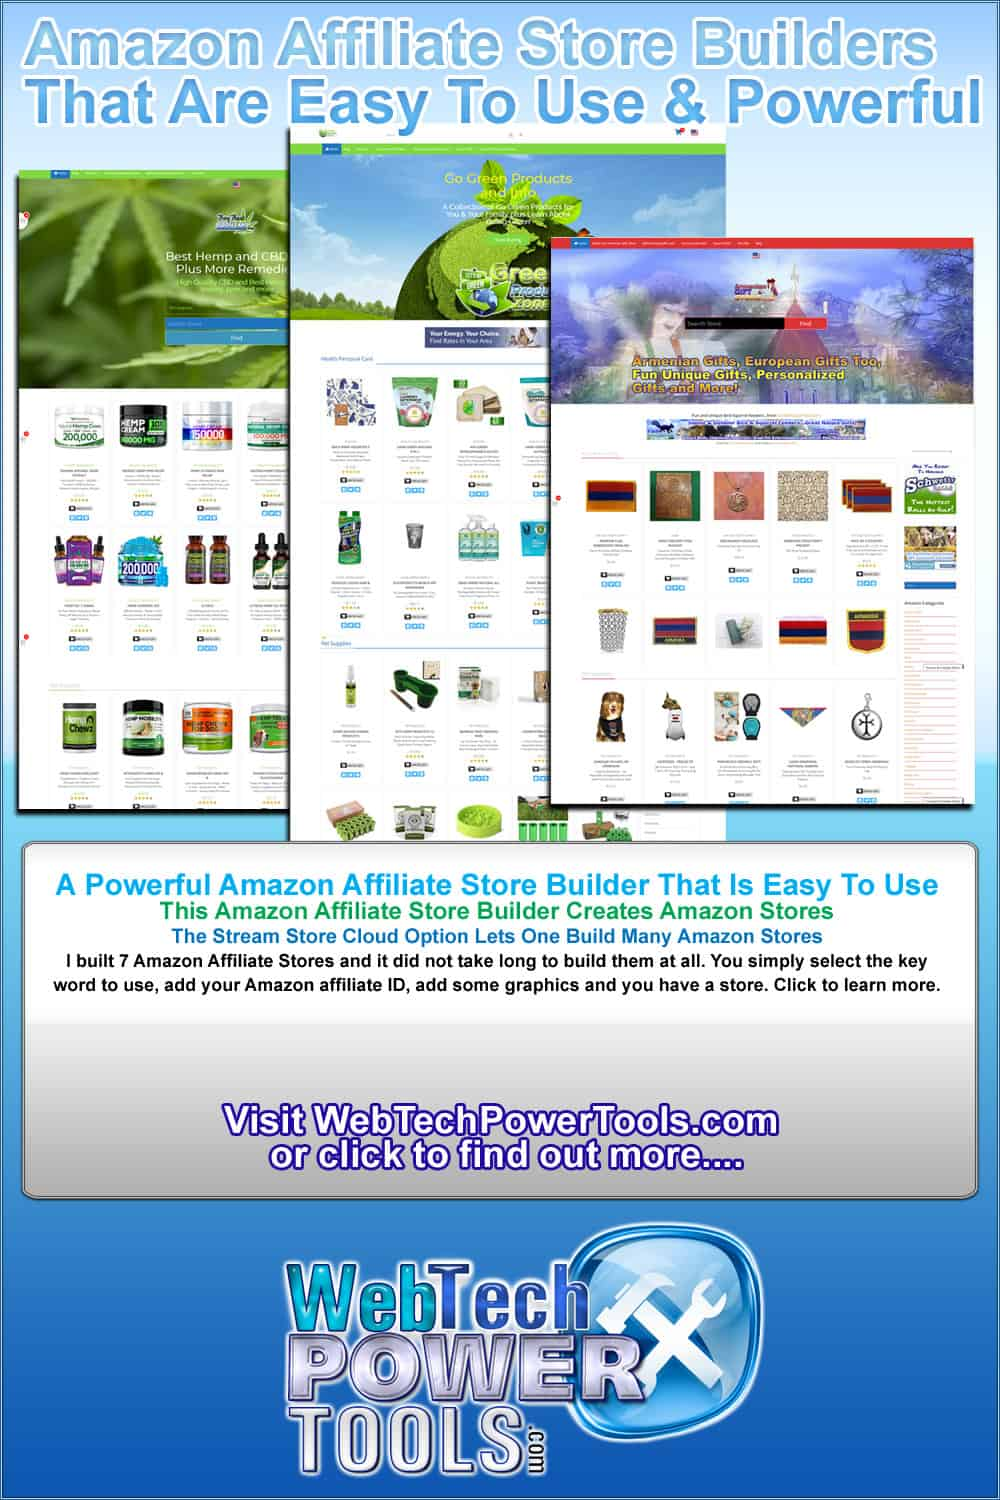 A Low Cost Powerful Amazon Affiliate Store Builder That Is Easy To Use